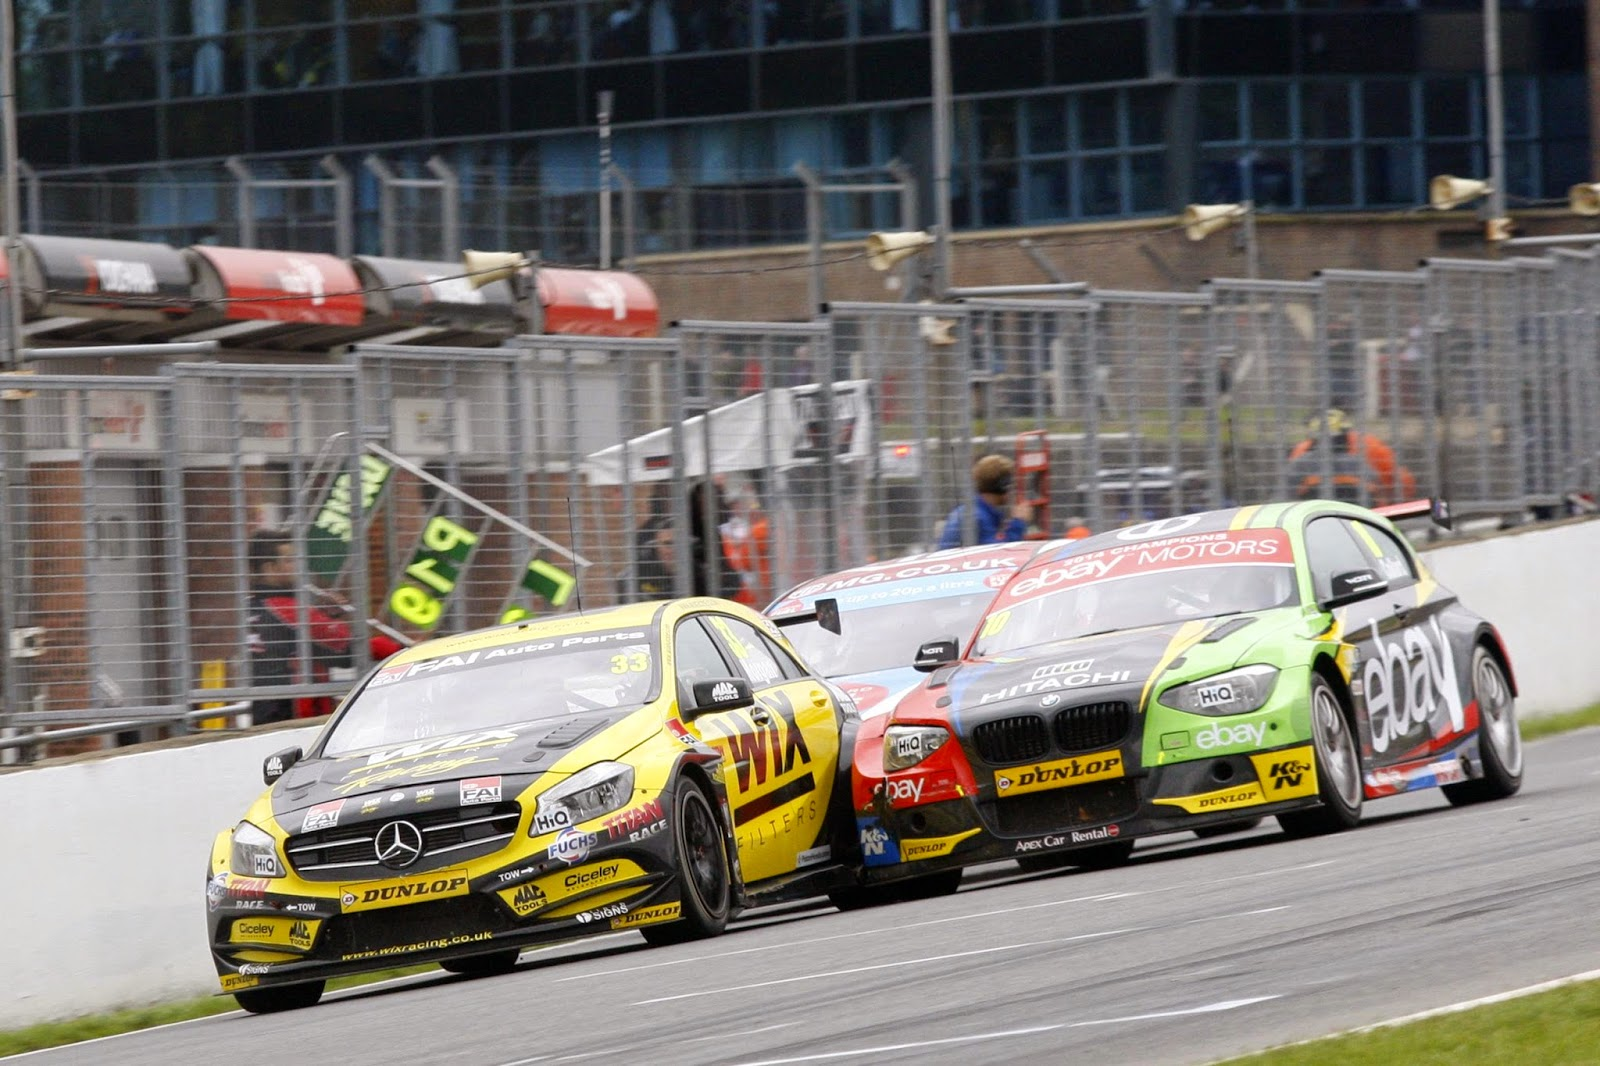 Life On Cars: Why I've signed the motorsport noise petition